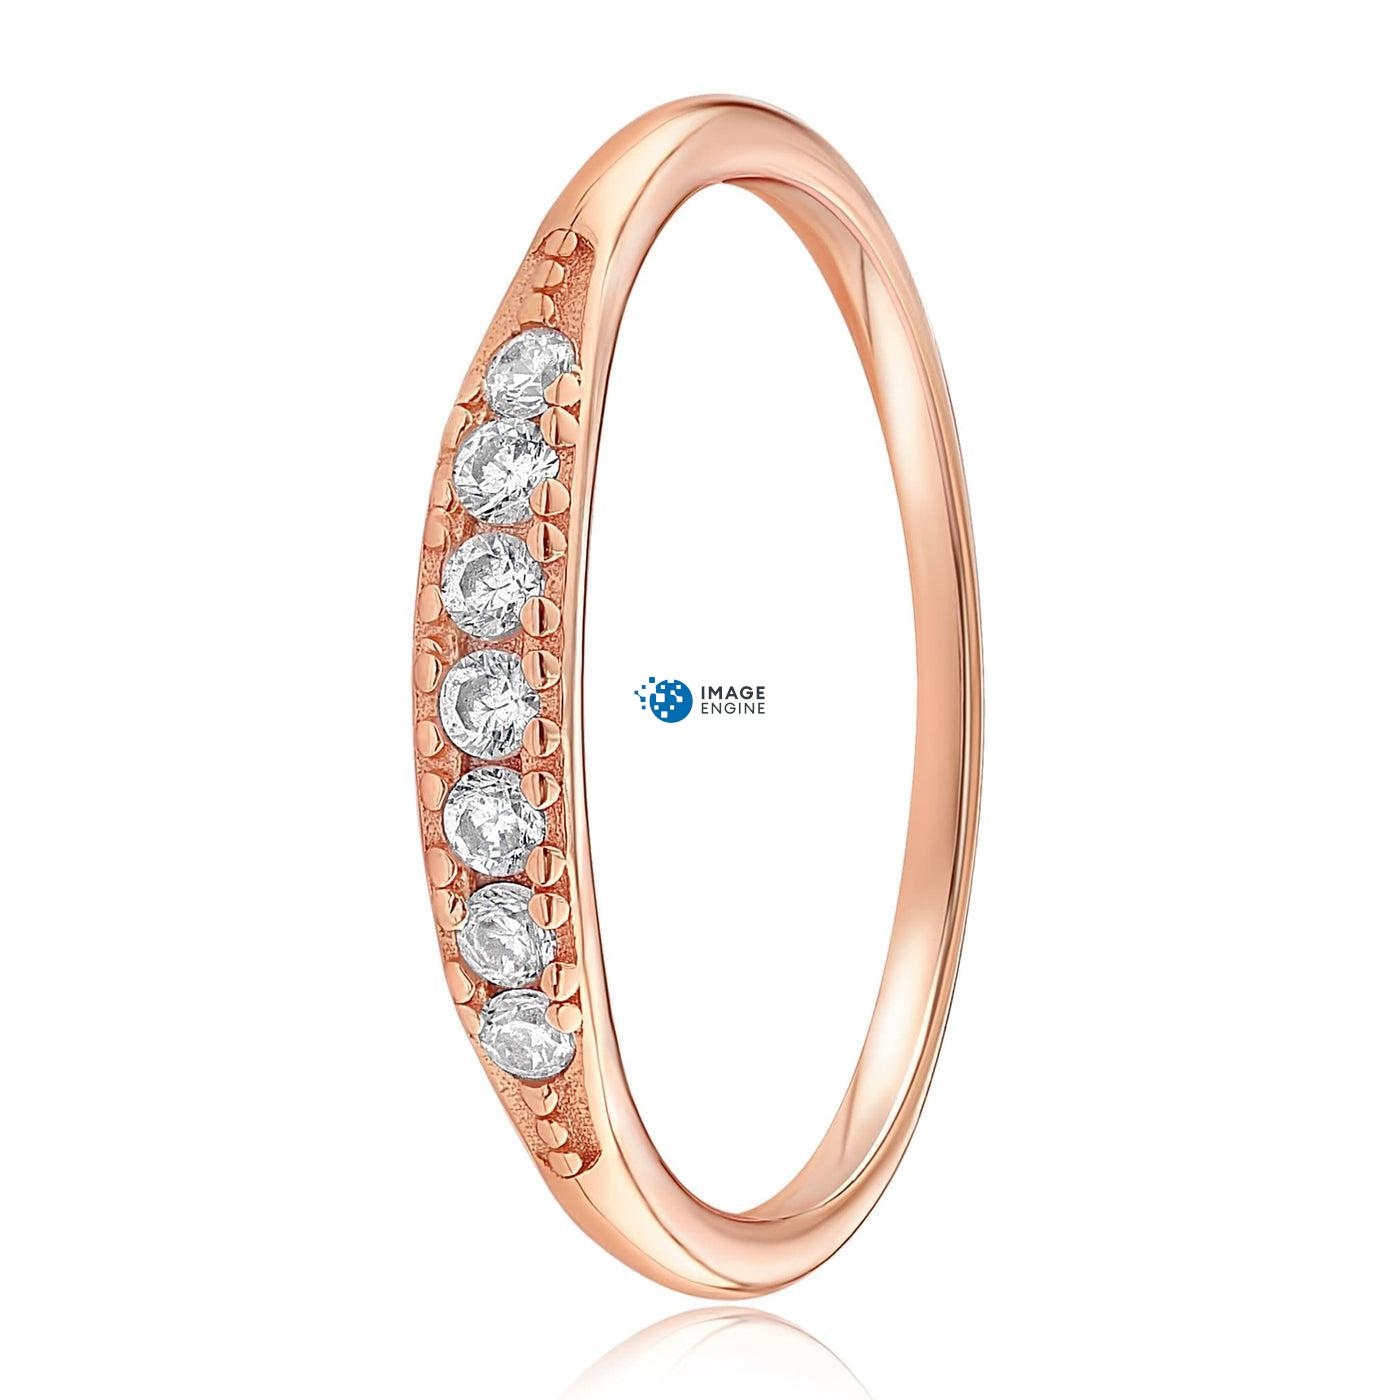 Kathleen Stack Ring - Side View - 18K Rose Gold Vermeil